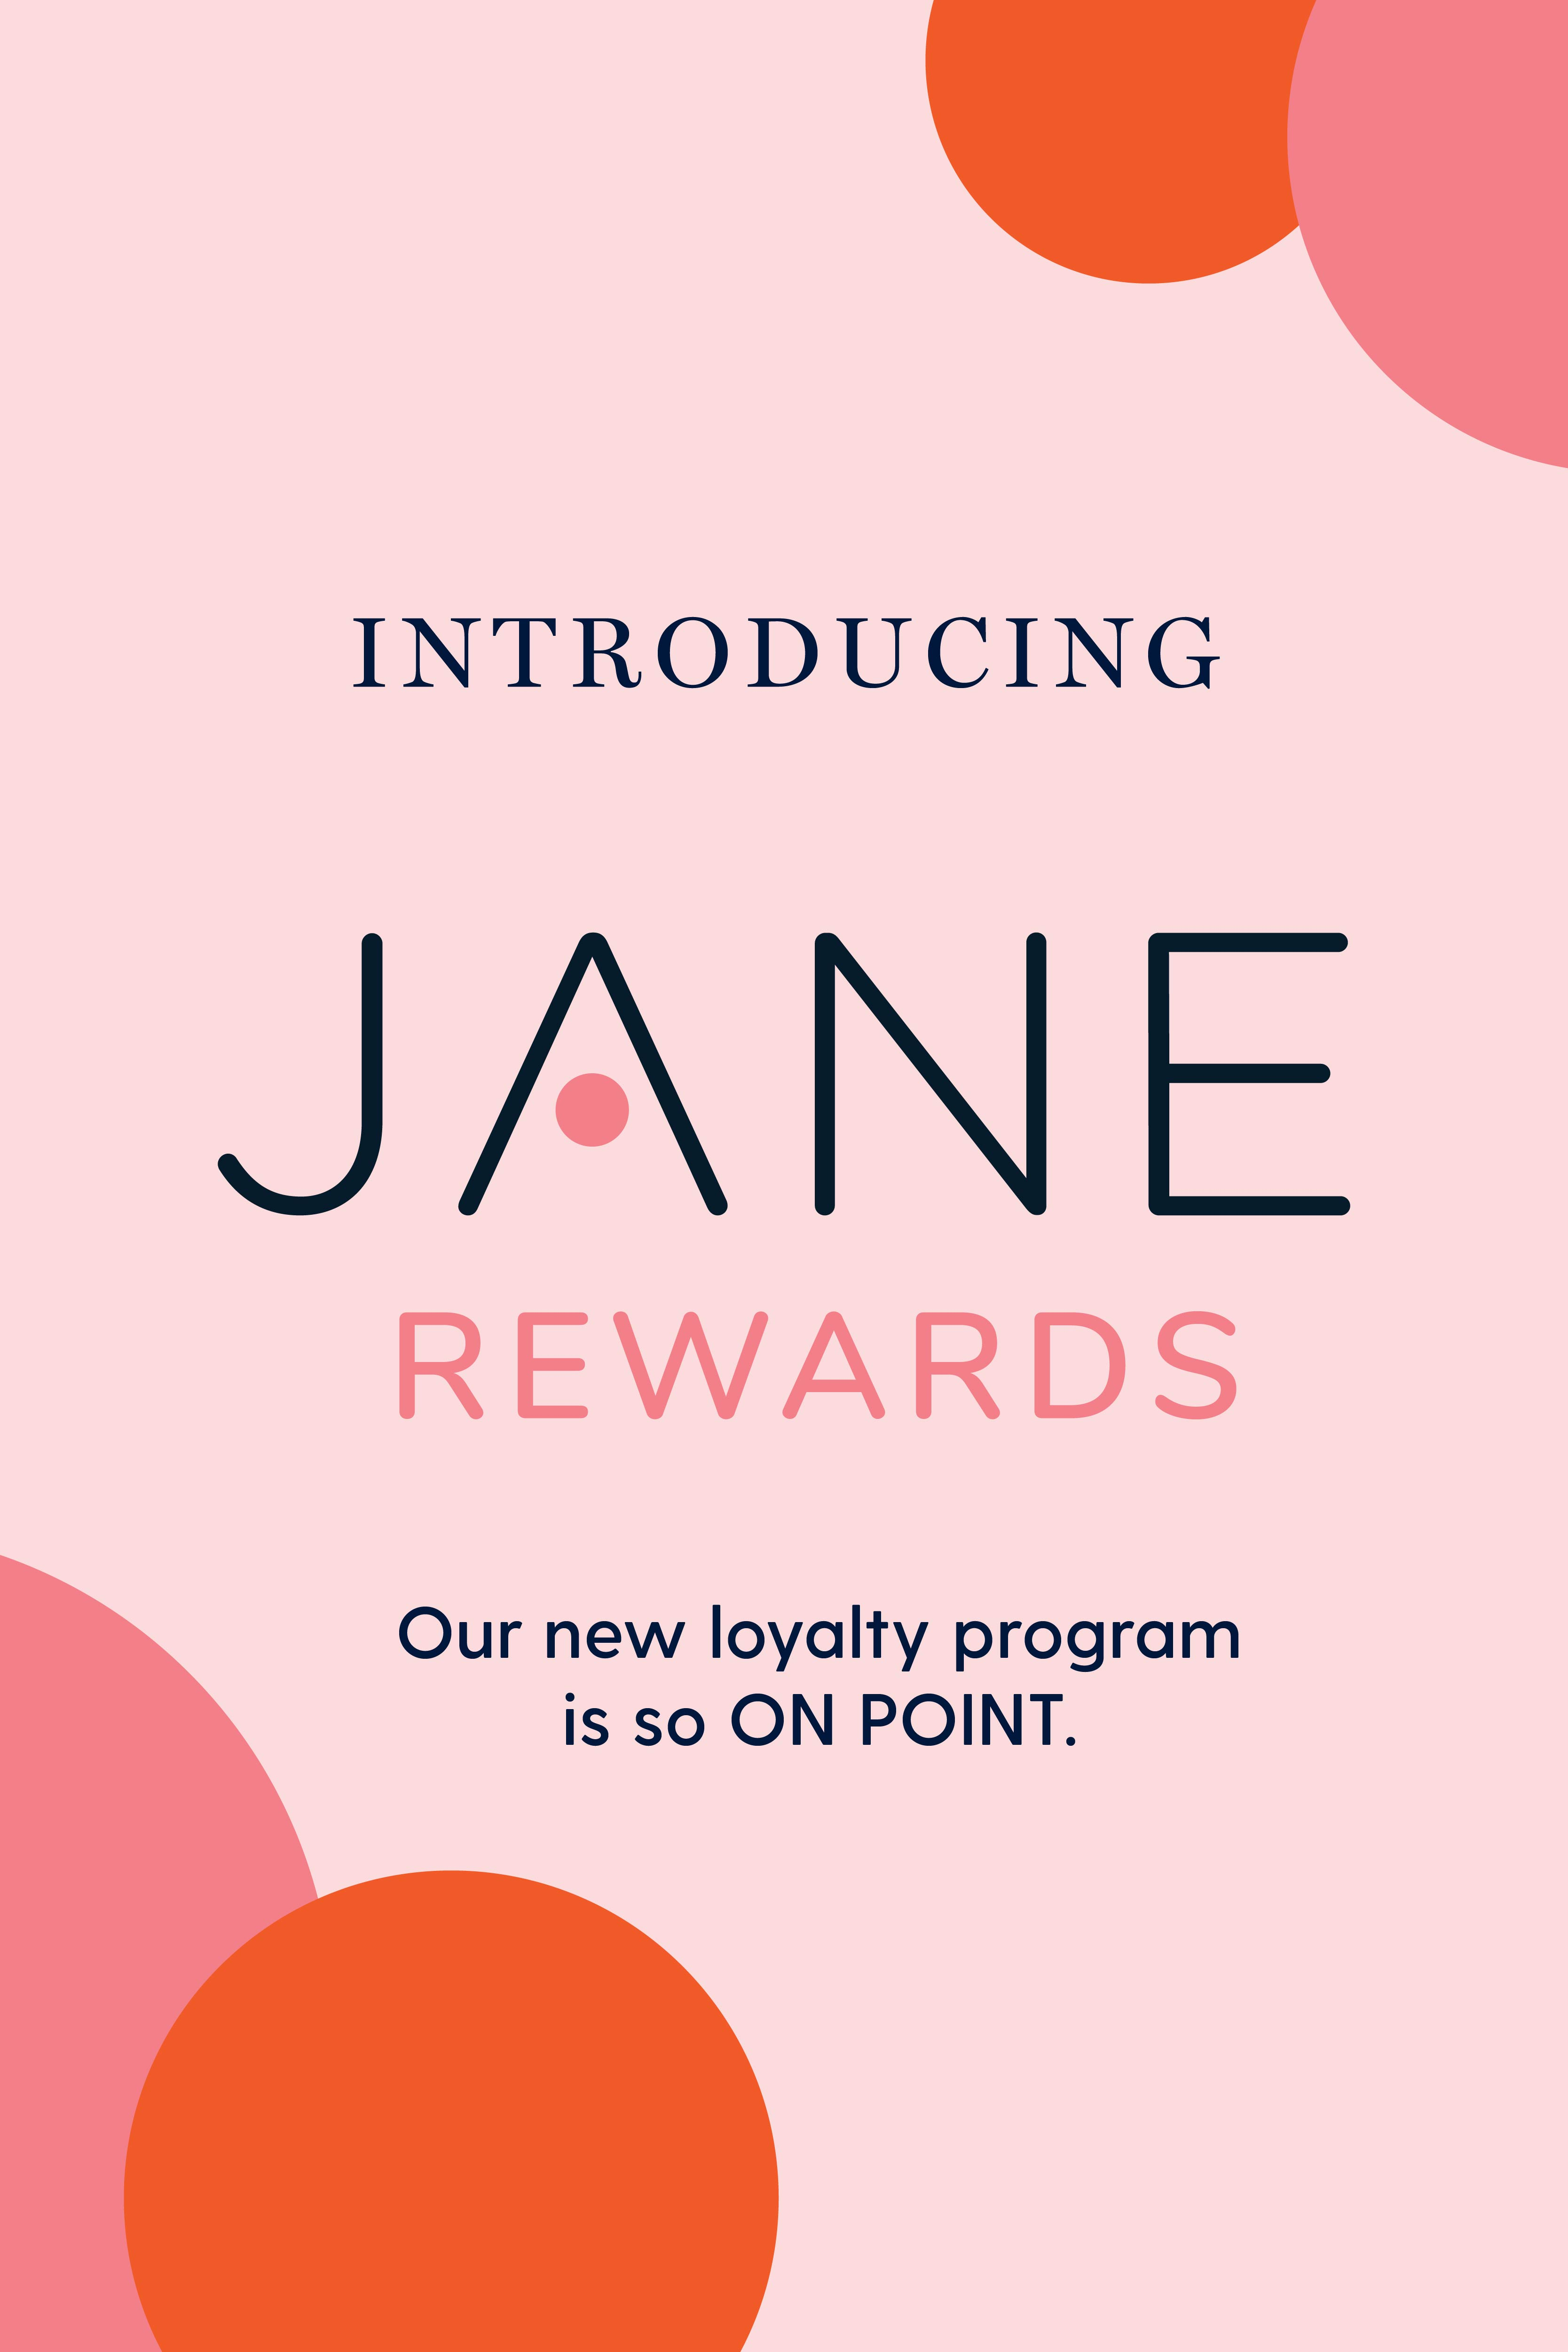 Introducing Jane Rewards. Our new loyalty program is so ON POINT.